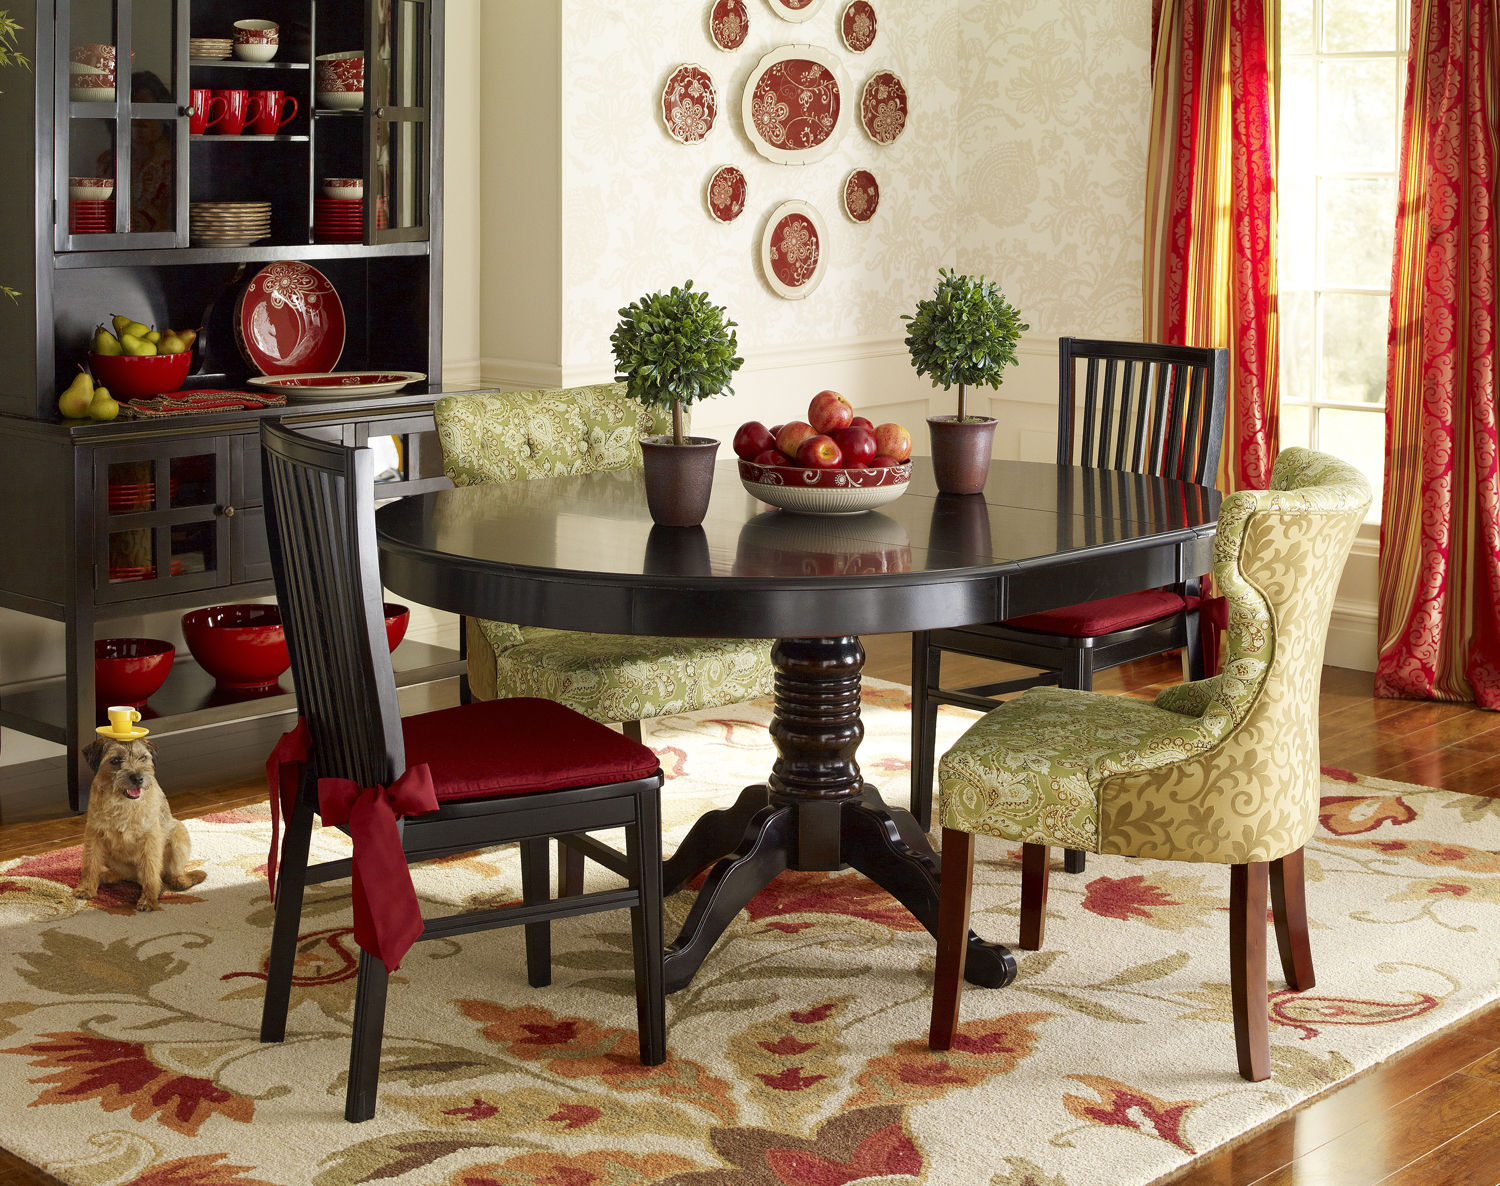 Dining room ideas design inpiration for Pier 1 dining room pictures